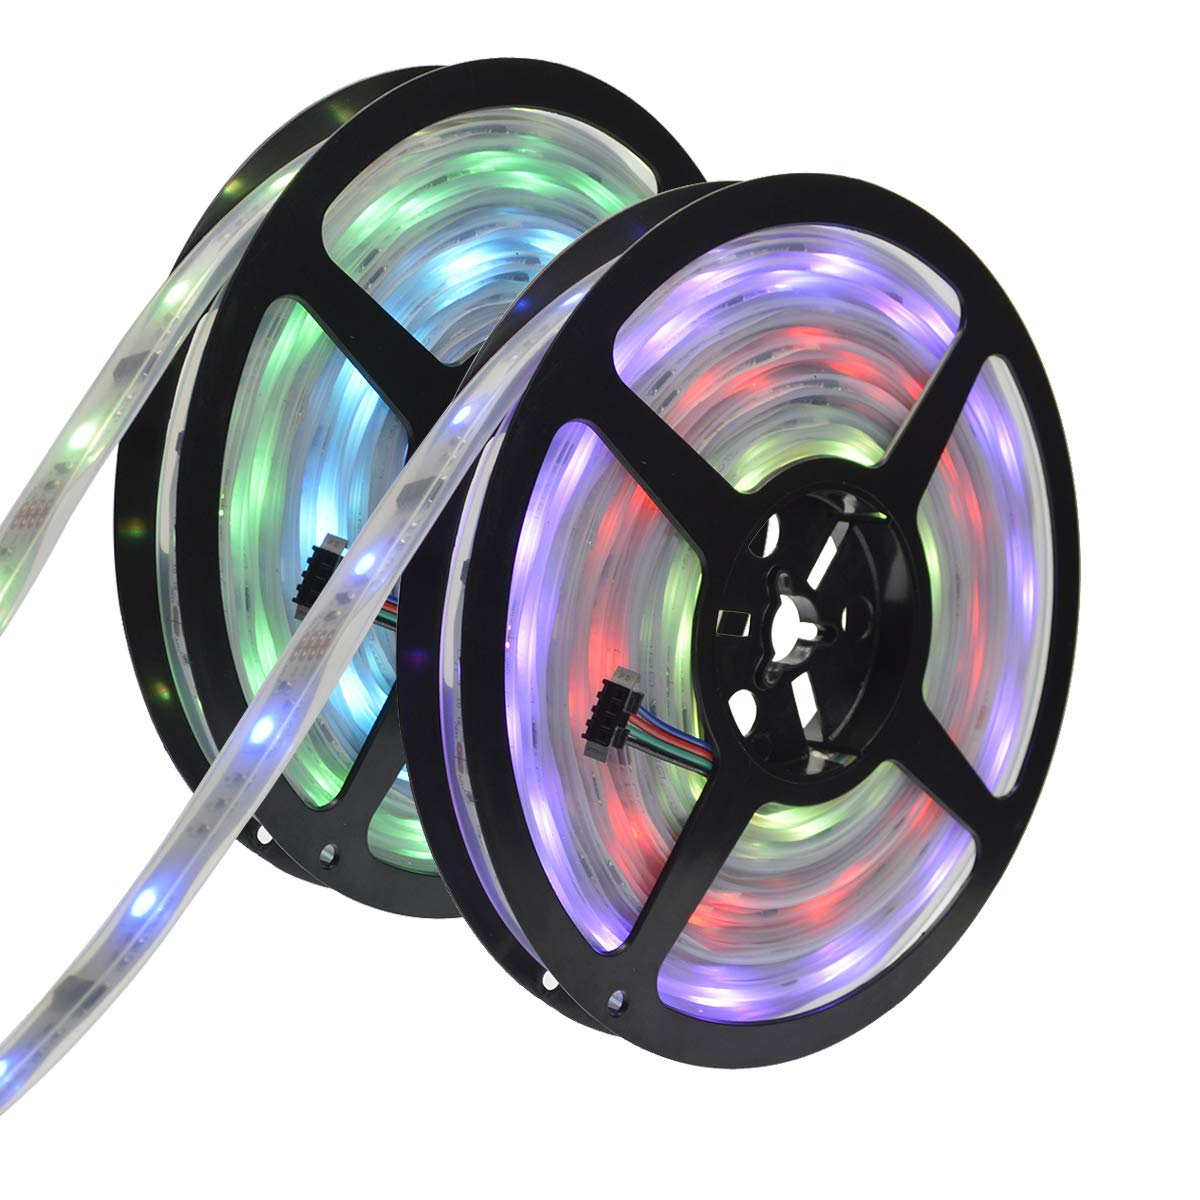 6803 IC RGB Magic Dream Color Multicolors LED Strip Lights Full Set ( Strip Lights + Remote Controller + Power Adapter ) Waterproof IP67 Tube Covered (10m/32ft)